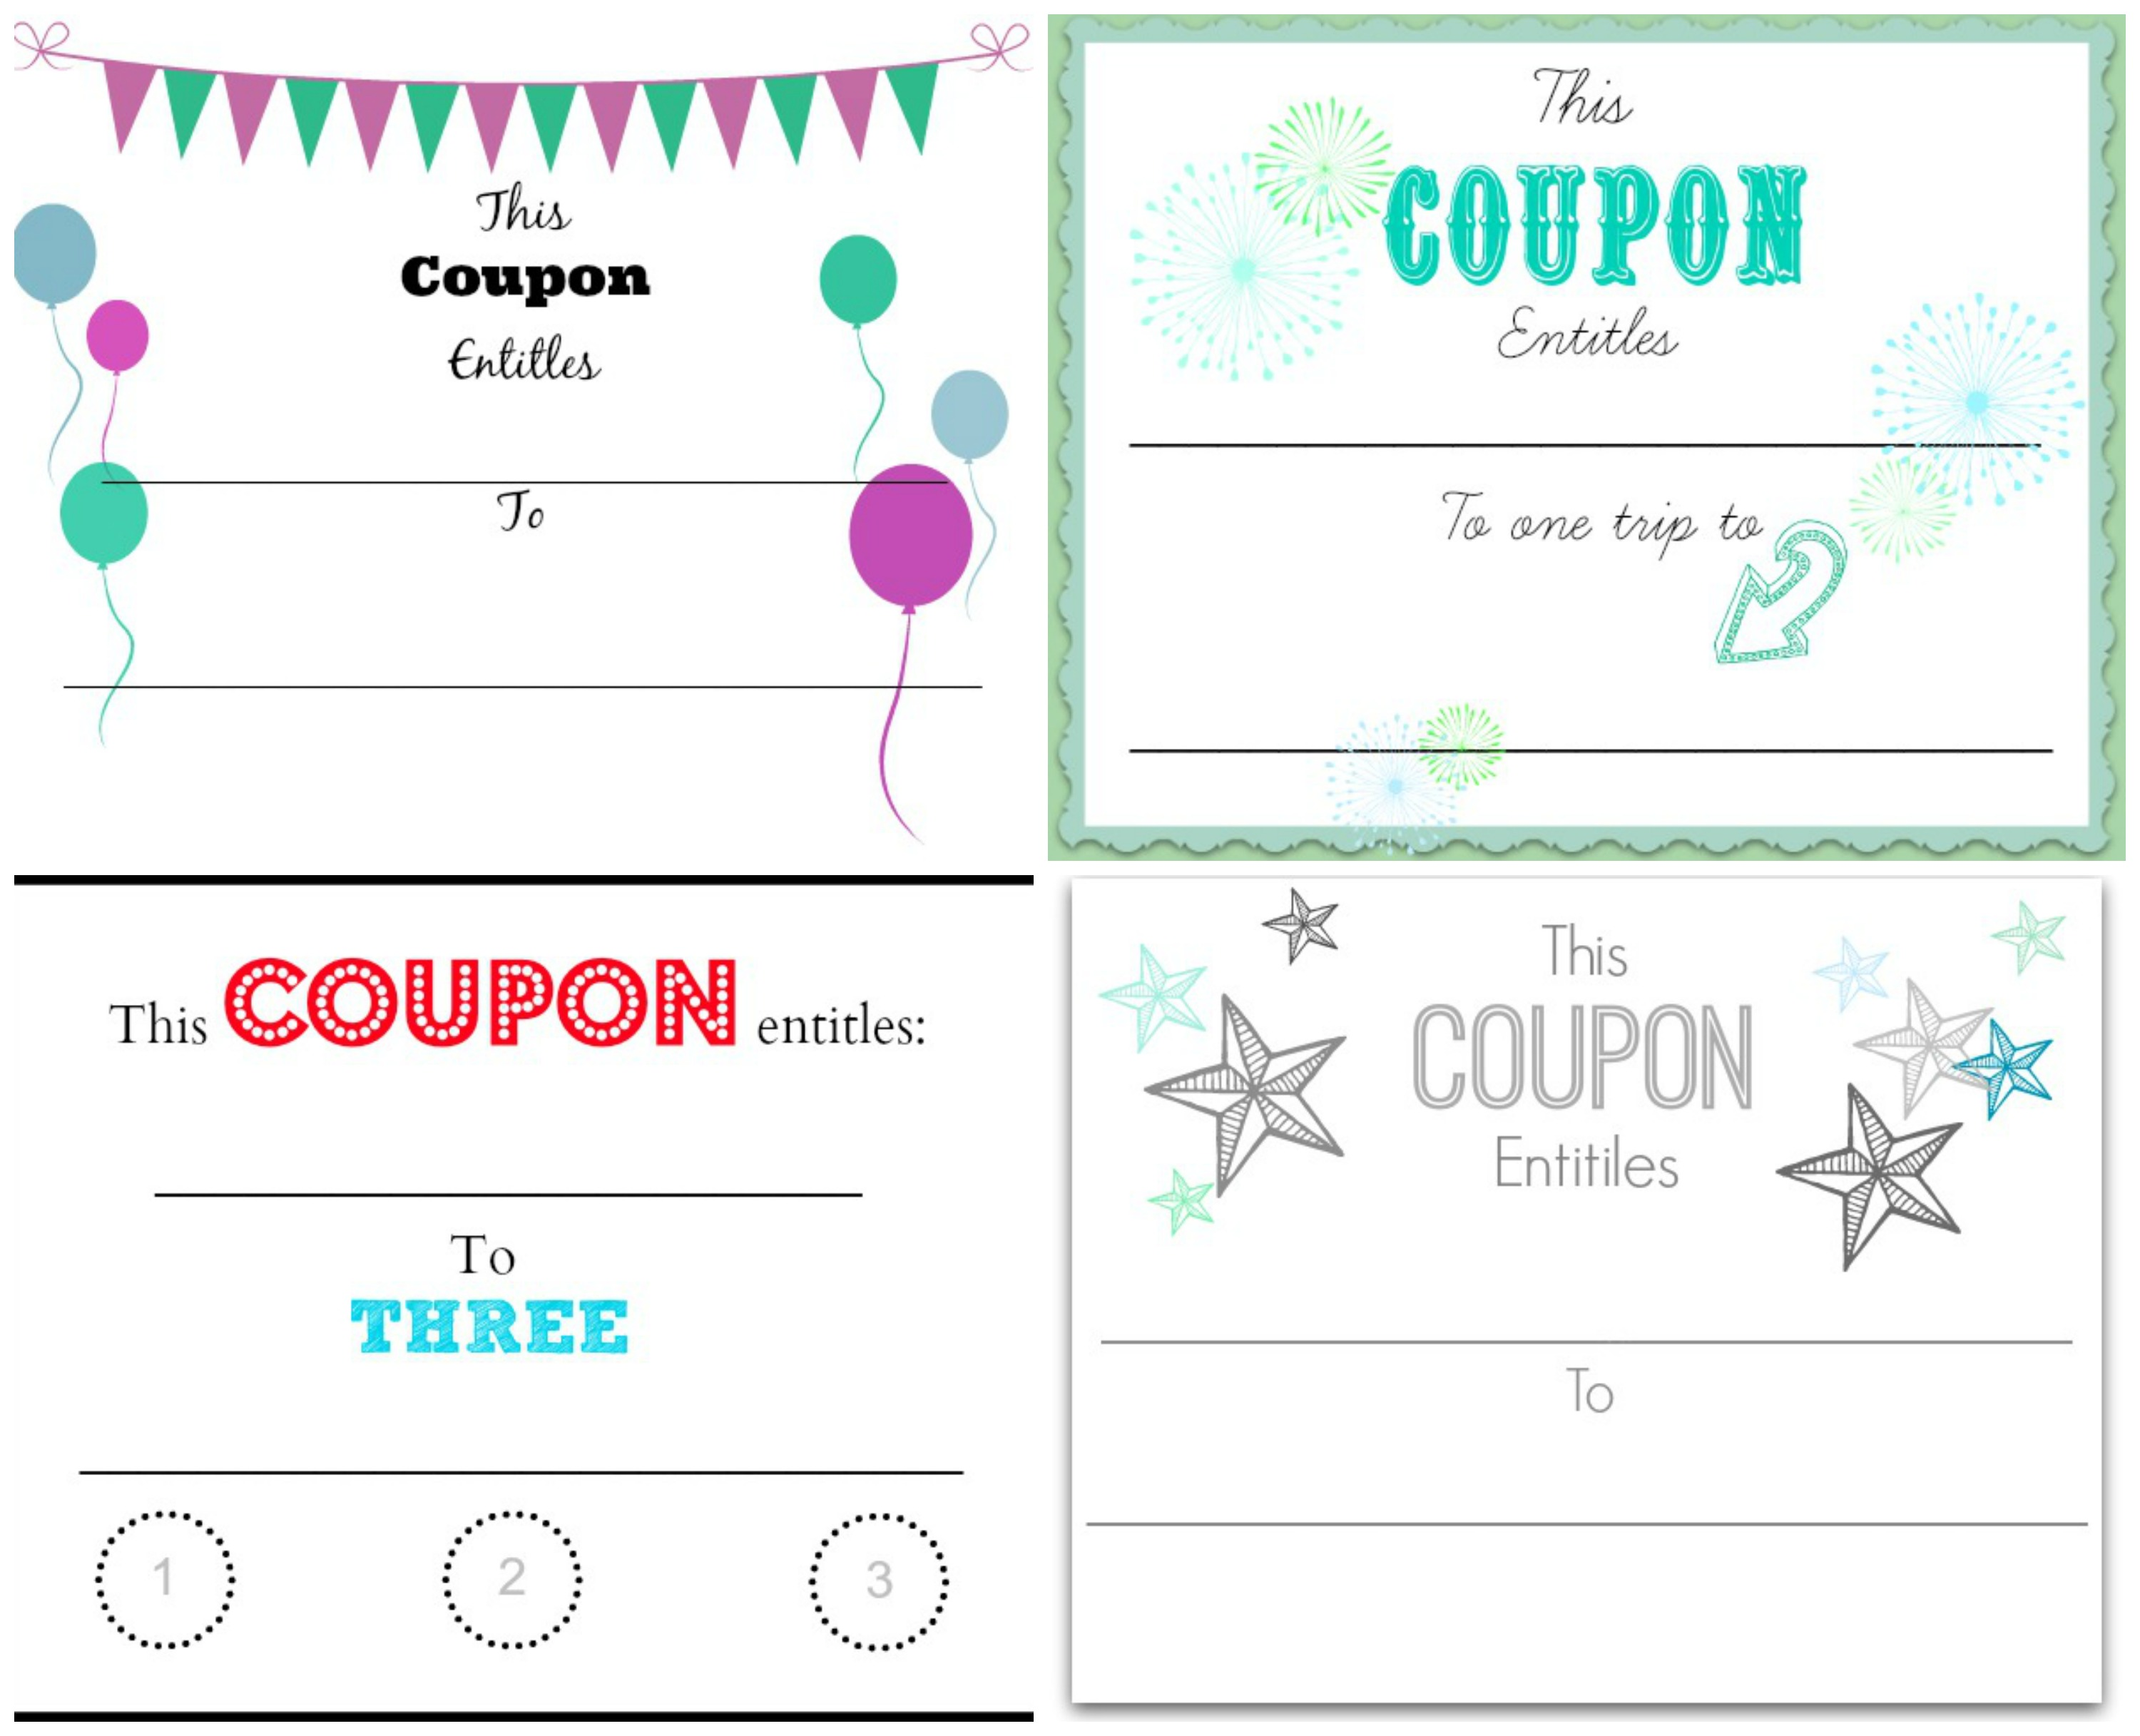 ... Coupon Collage  Make Your Own Gift Certificates Free